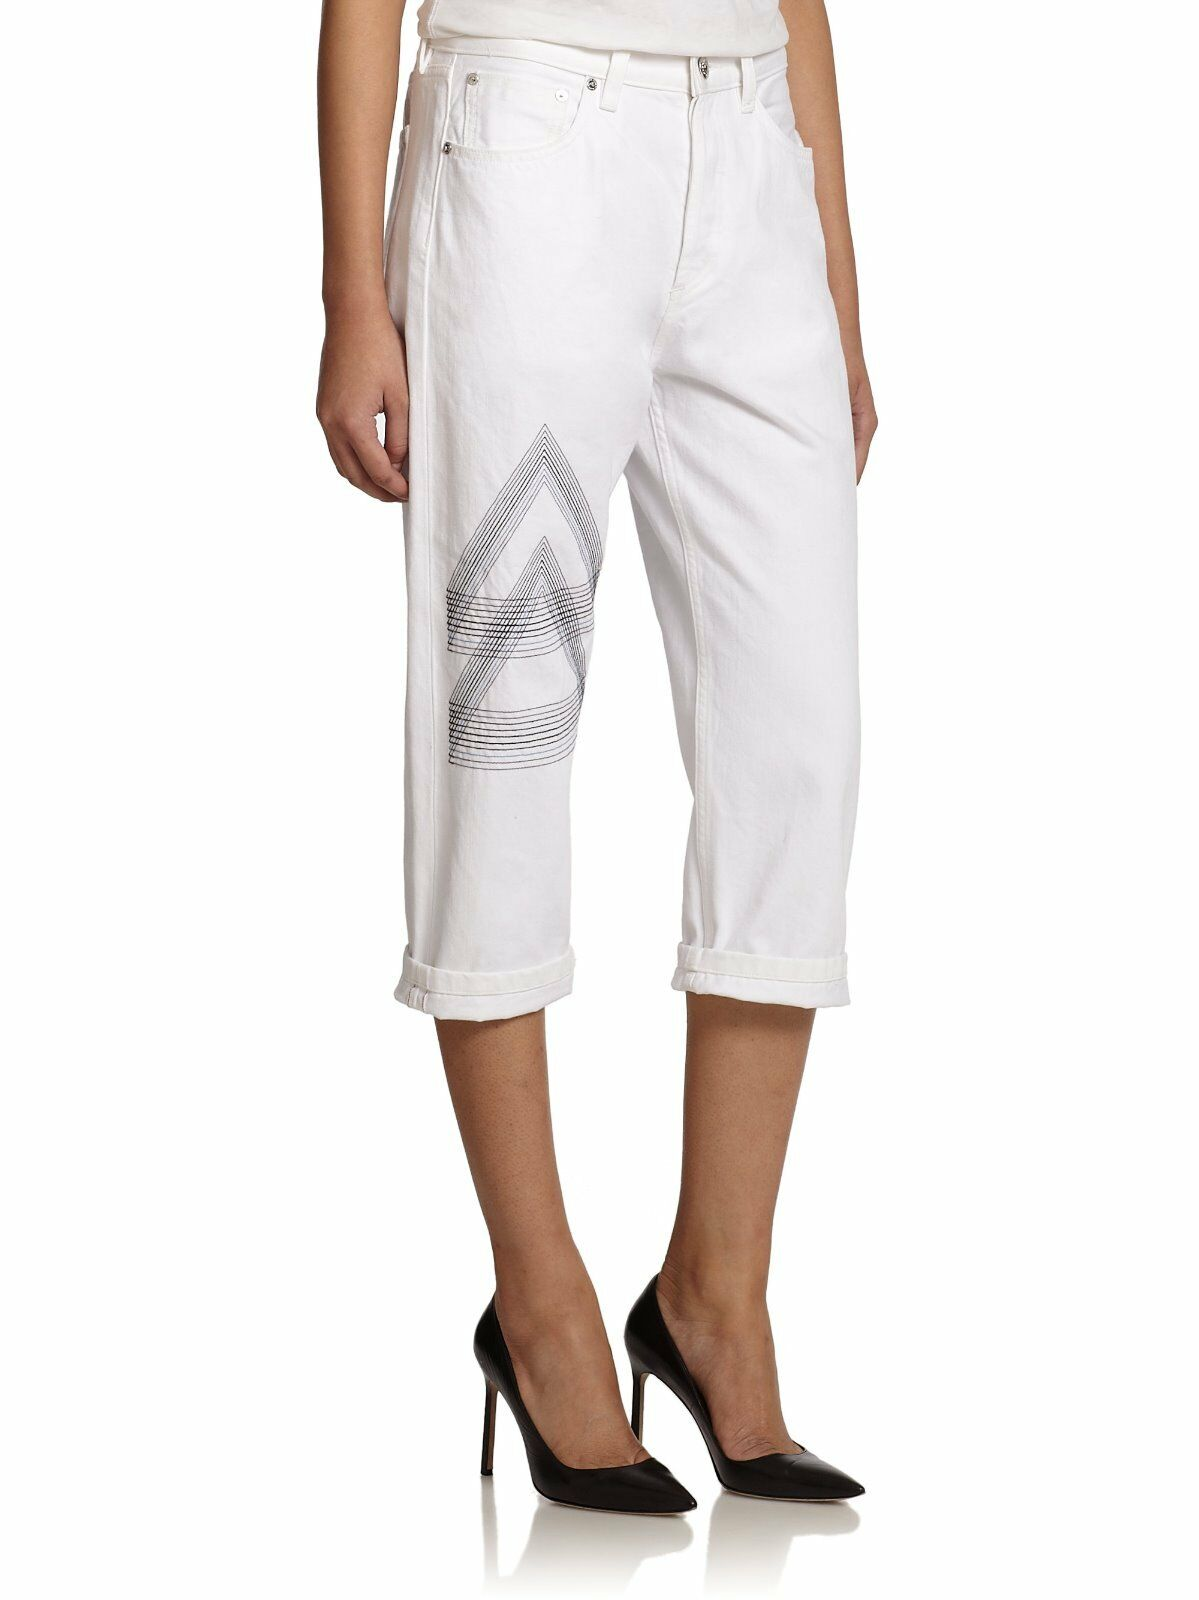 278 MARC by MARC JACOBS White Embroidered Cropped Straight-Leg JeansSZ 30